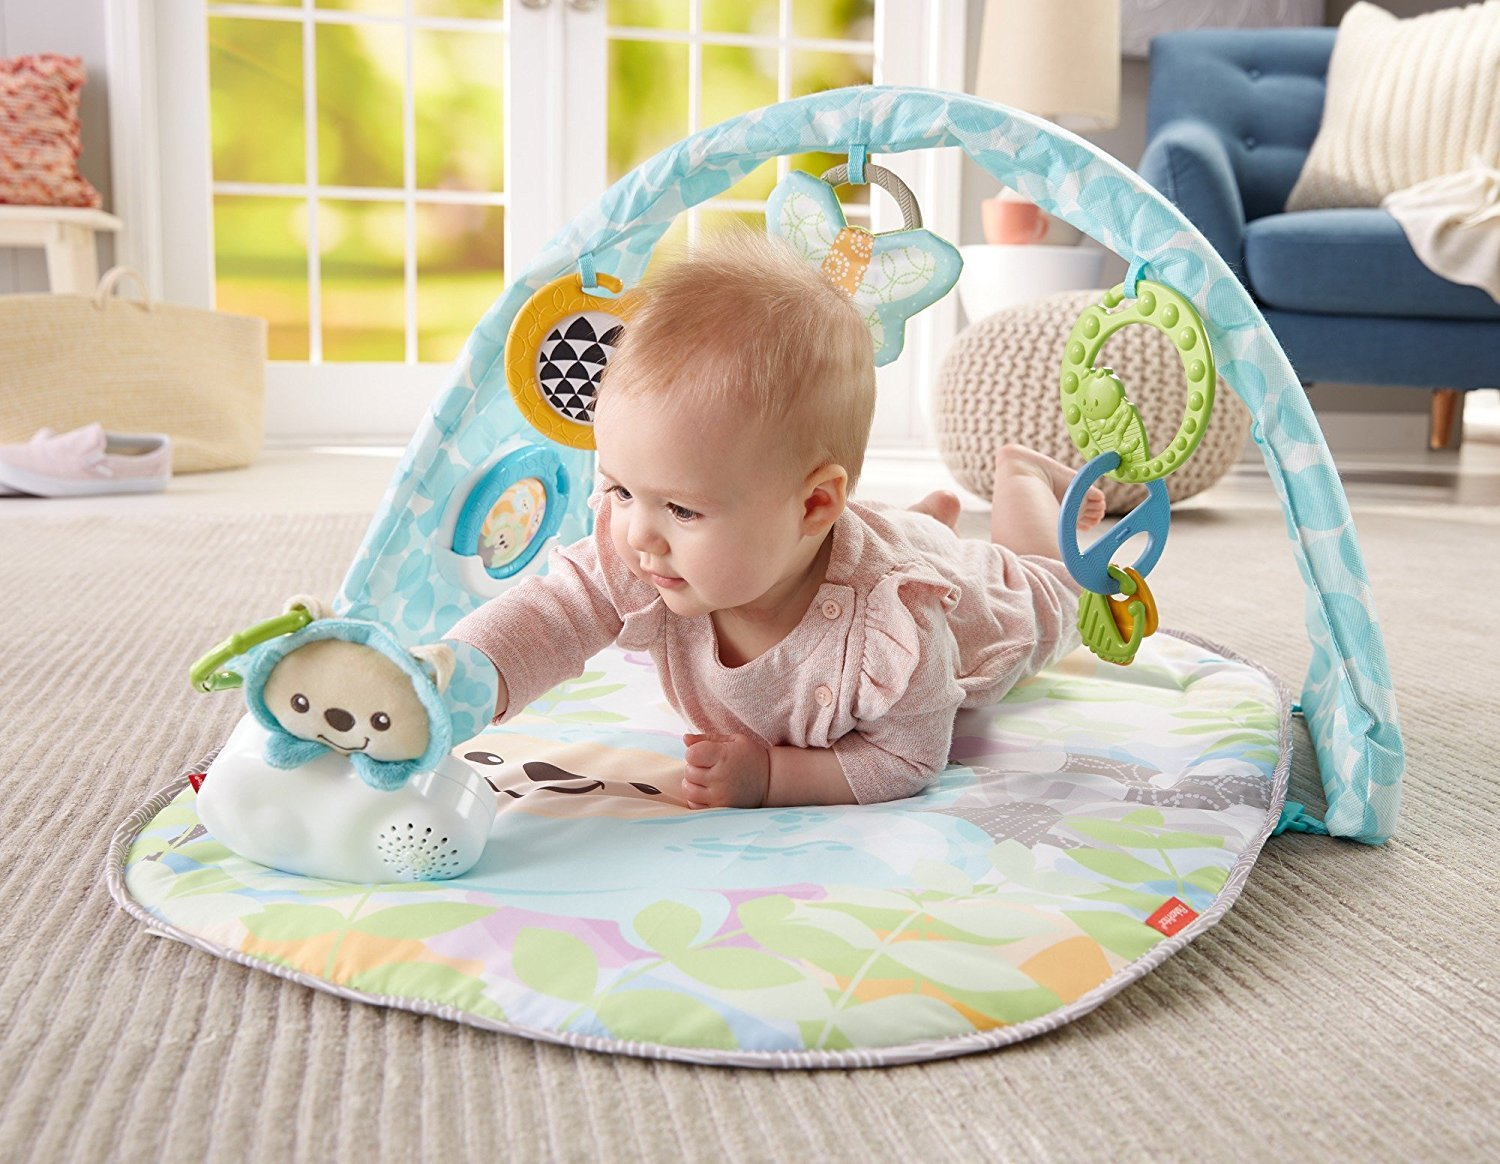 Fisher Price Butterfly Dreams Musical Playtime Gym DYW46 Aktivitātes paklājs